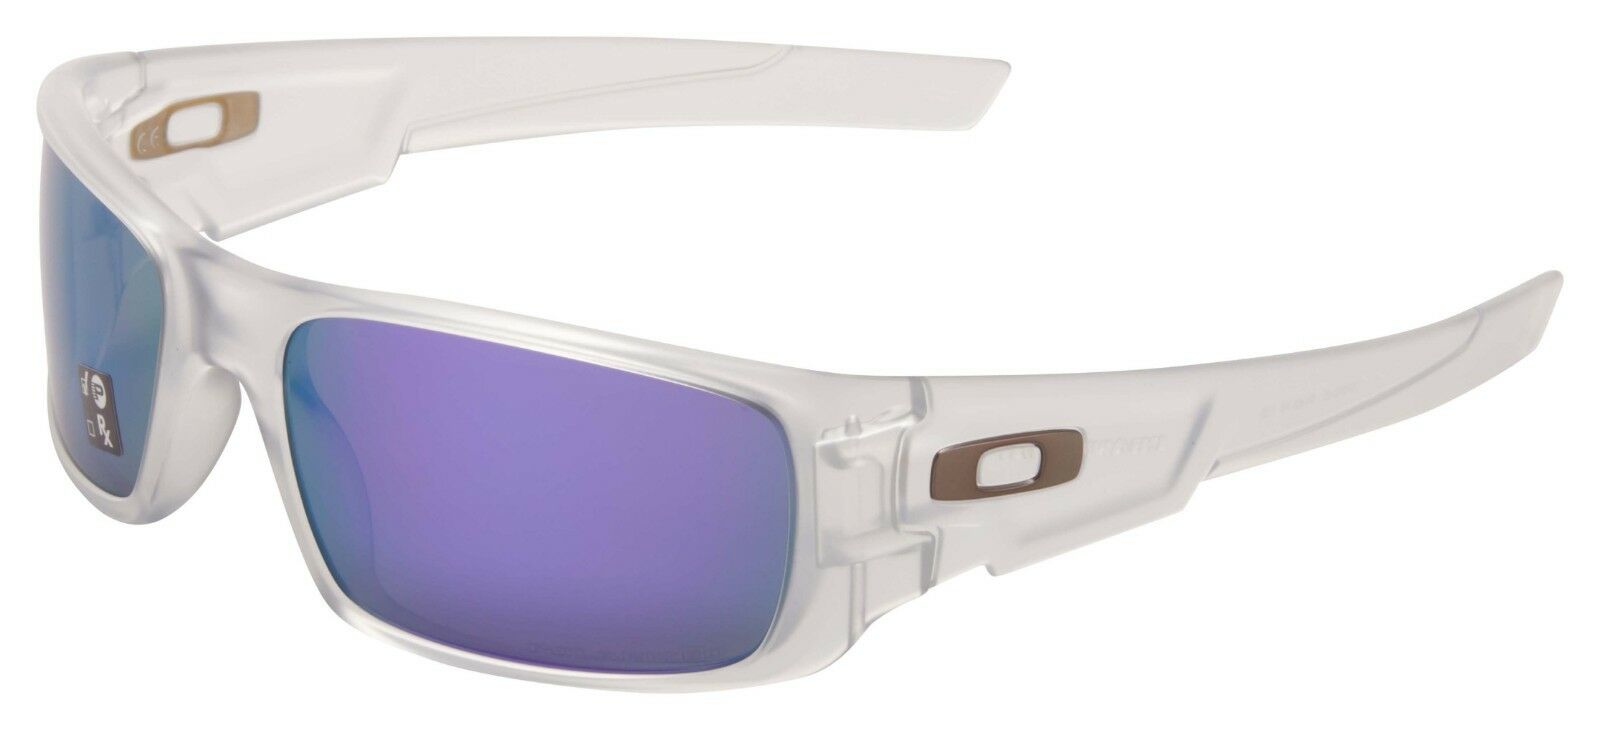 Oakley Crankshaft Sunglasses OO9239-09 Matte Clear | Violet Iridium Polarized